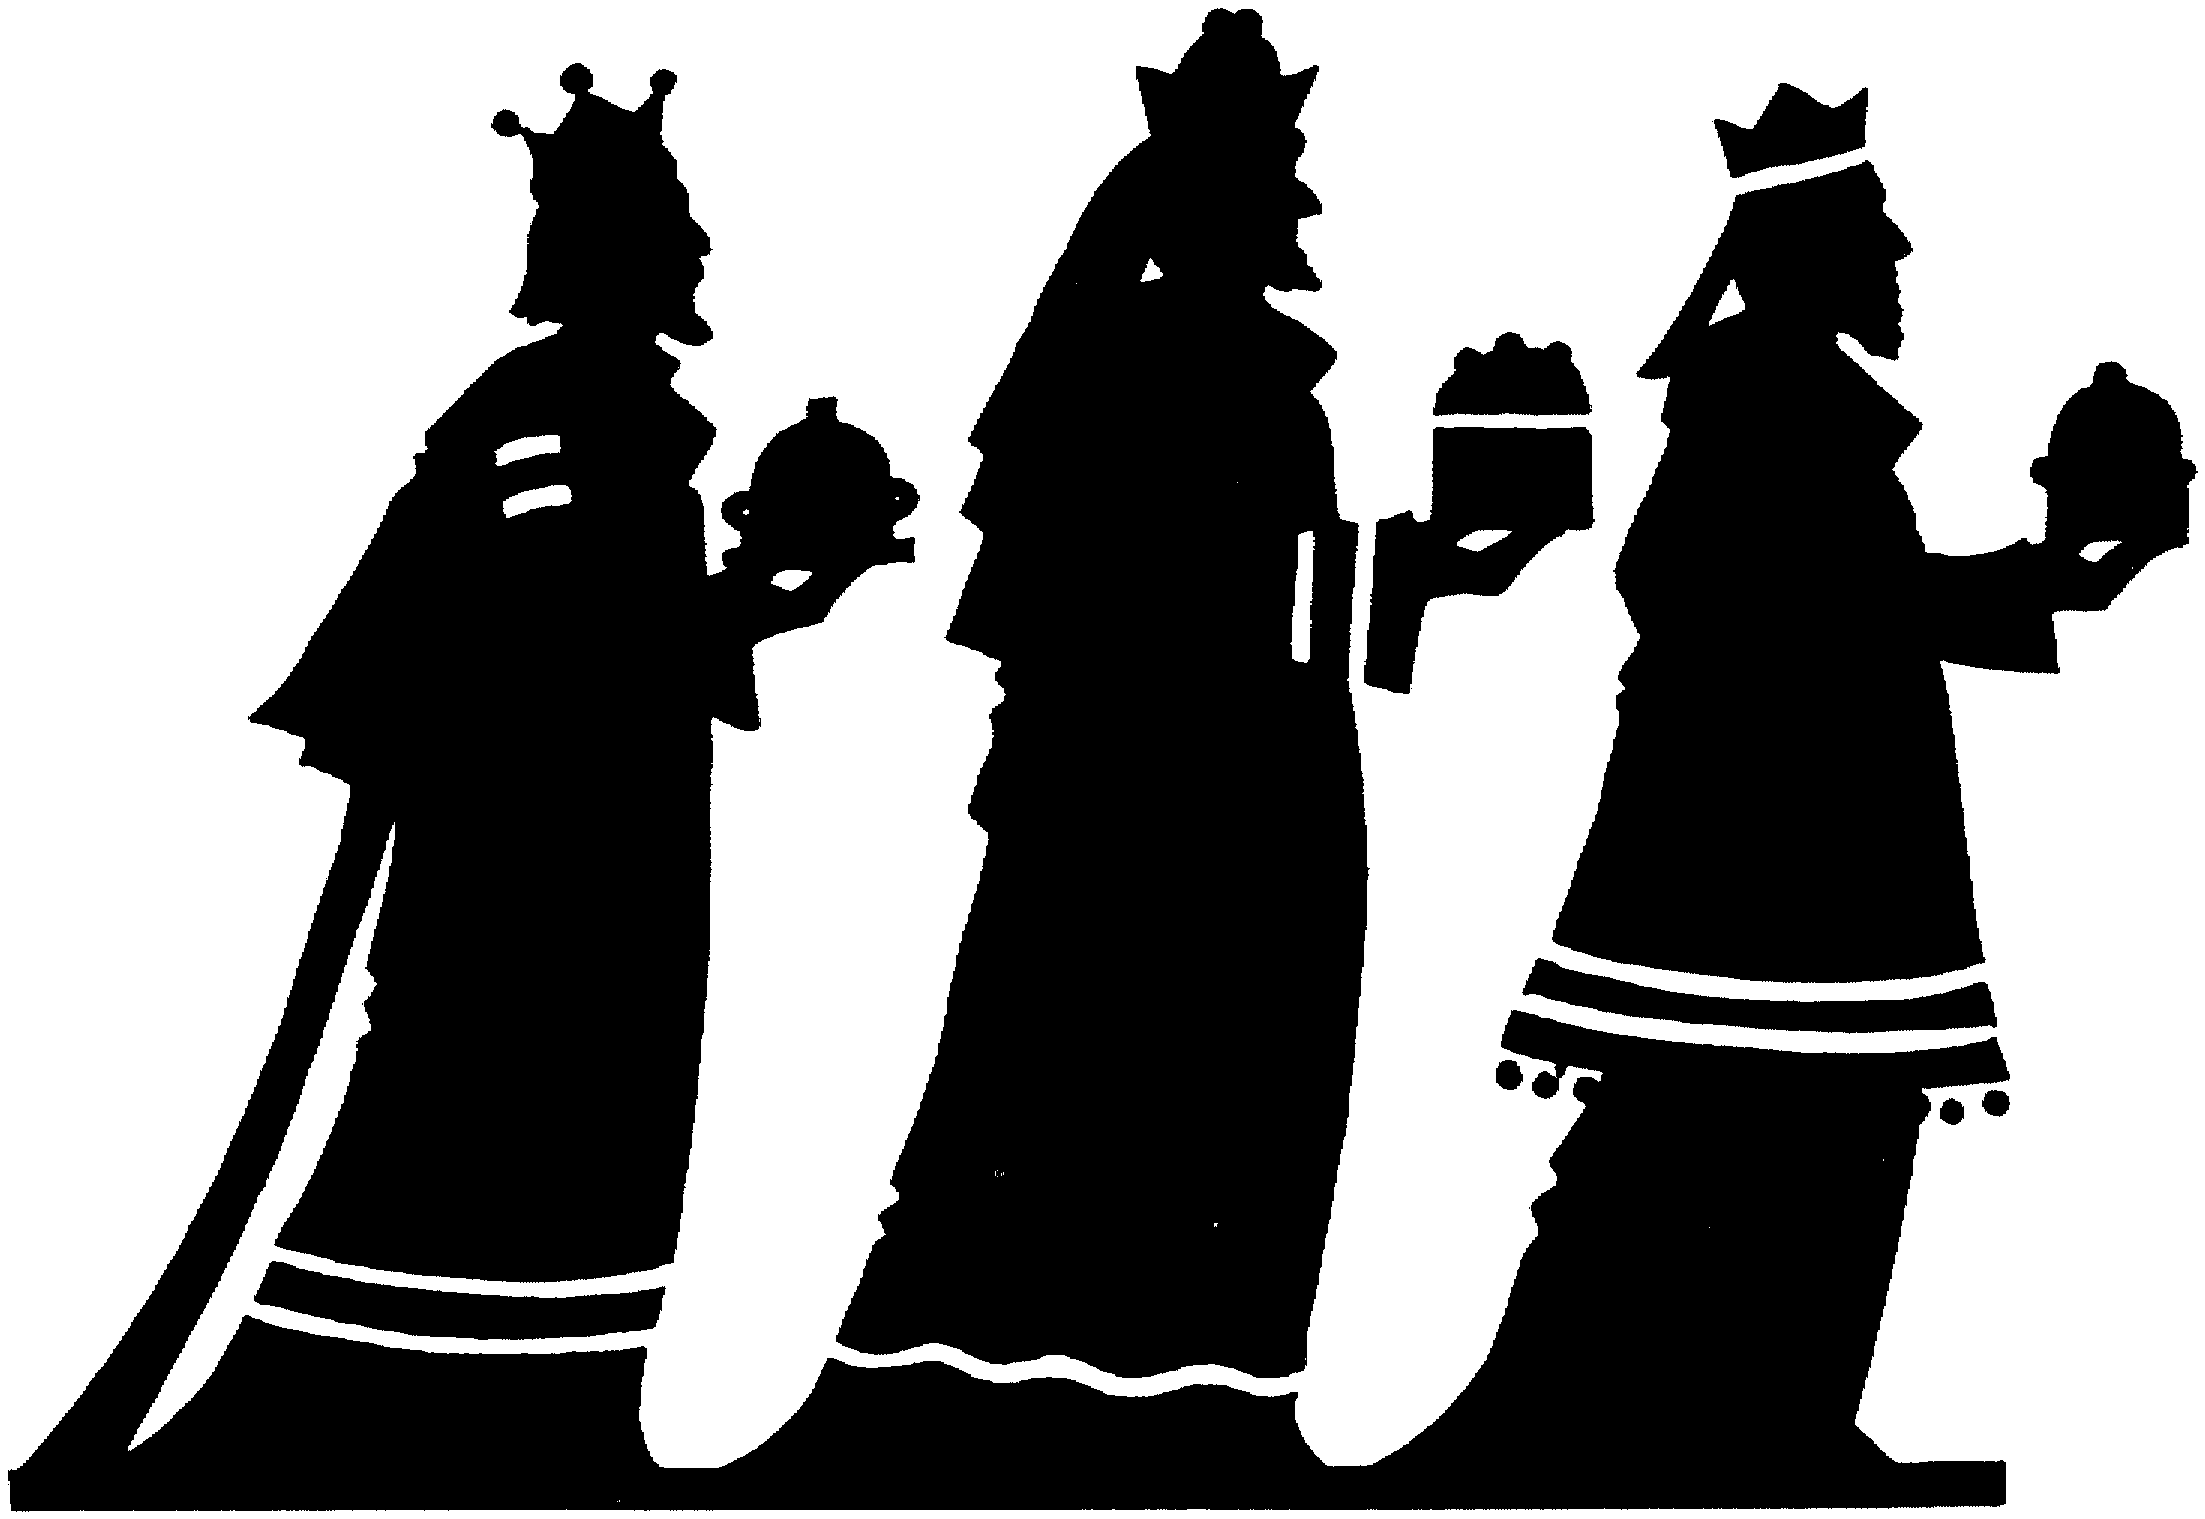 Three Wise Men Png Free Three Wise Men Png Transparent Images 11230 Pngio